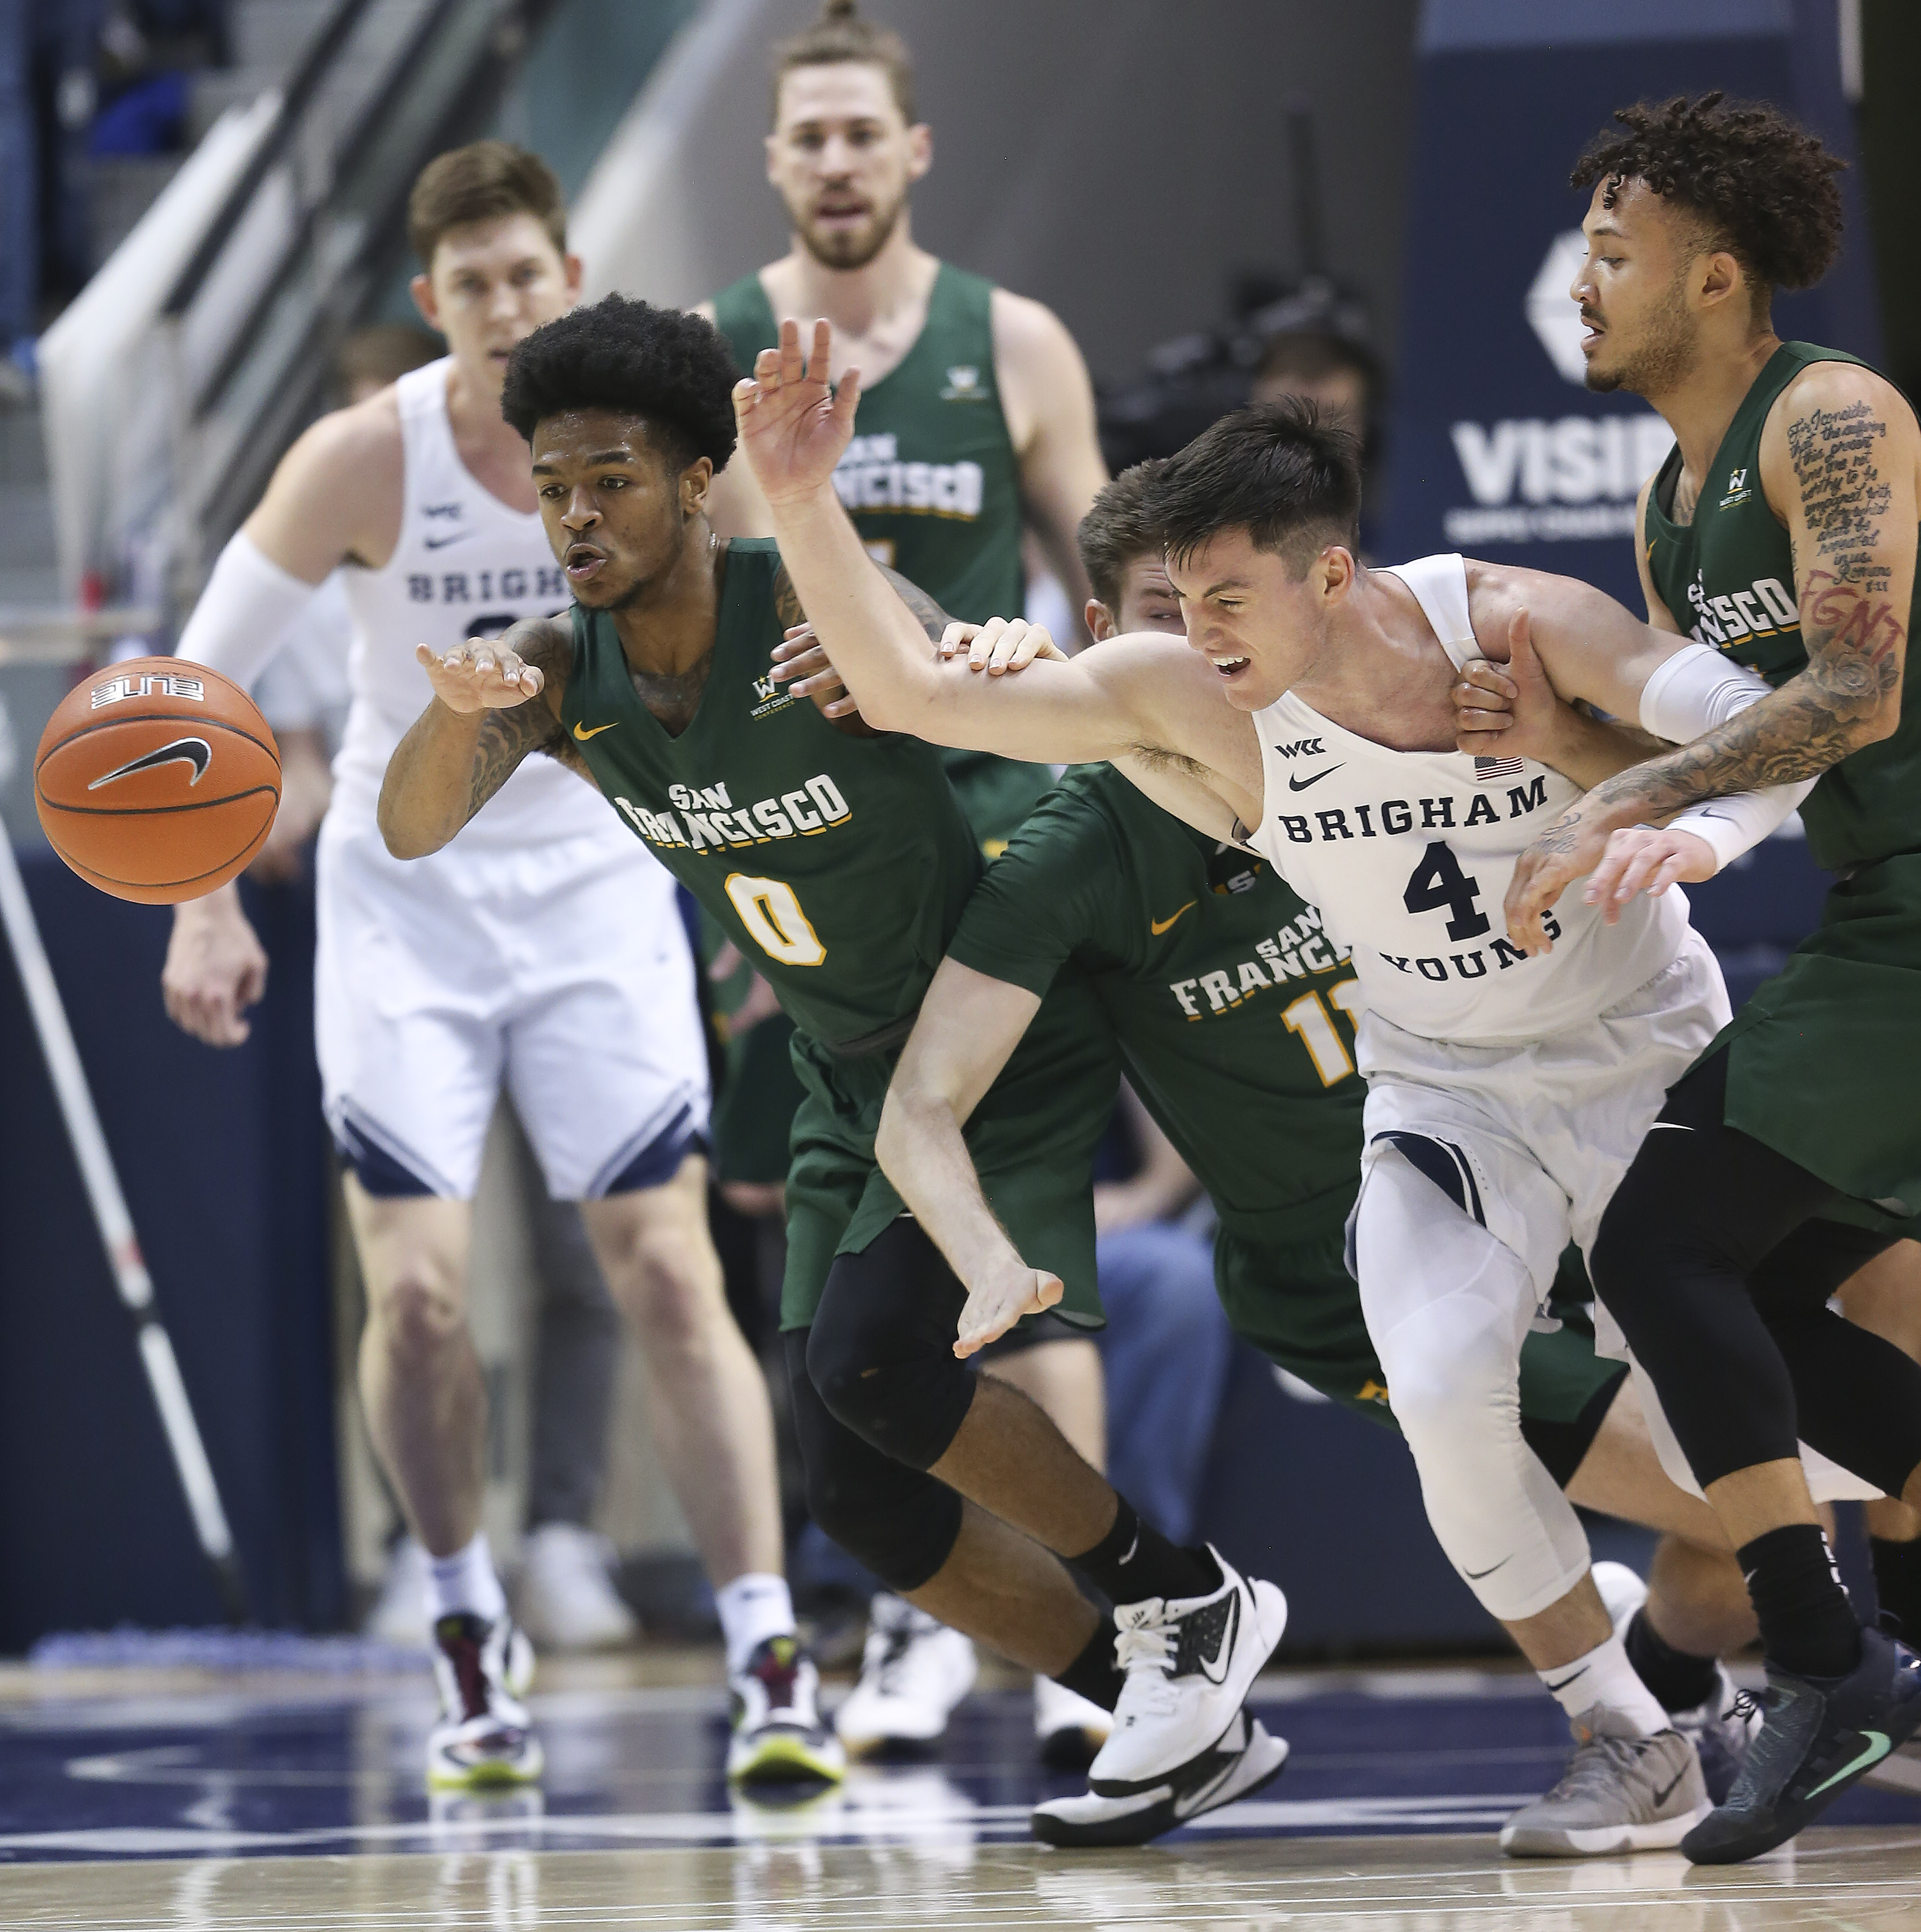 Brigham Young Cougars guard Alex Barcello (4) and San Francisco Dons guard Khalil Shabazz (0) fight for the ball in Provo on Saturday, Feb. 8, 2020. BYU won 90-76.